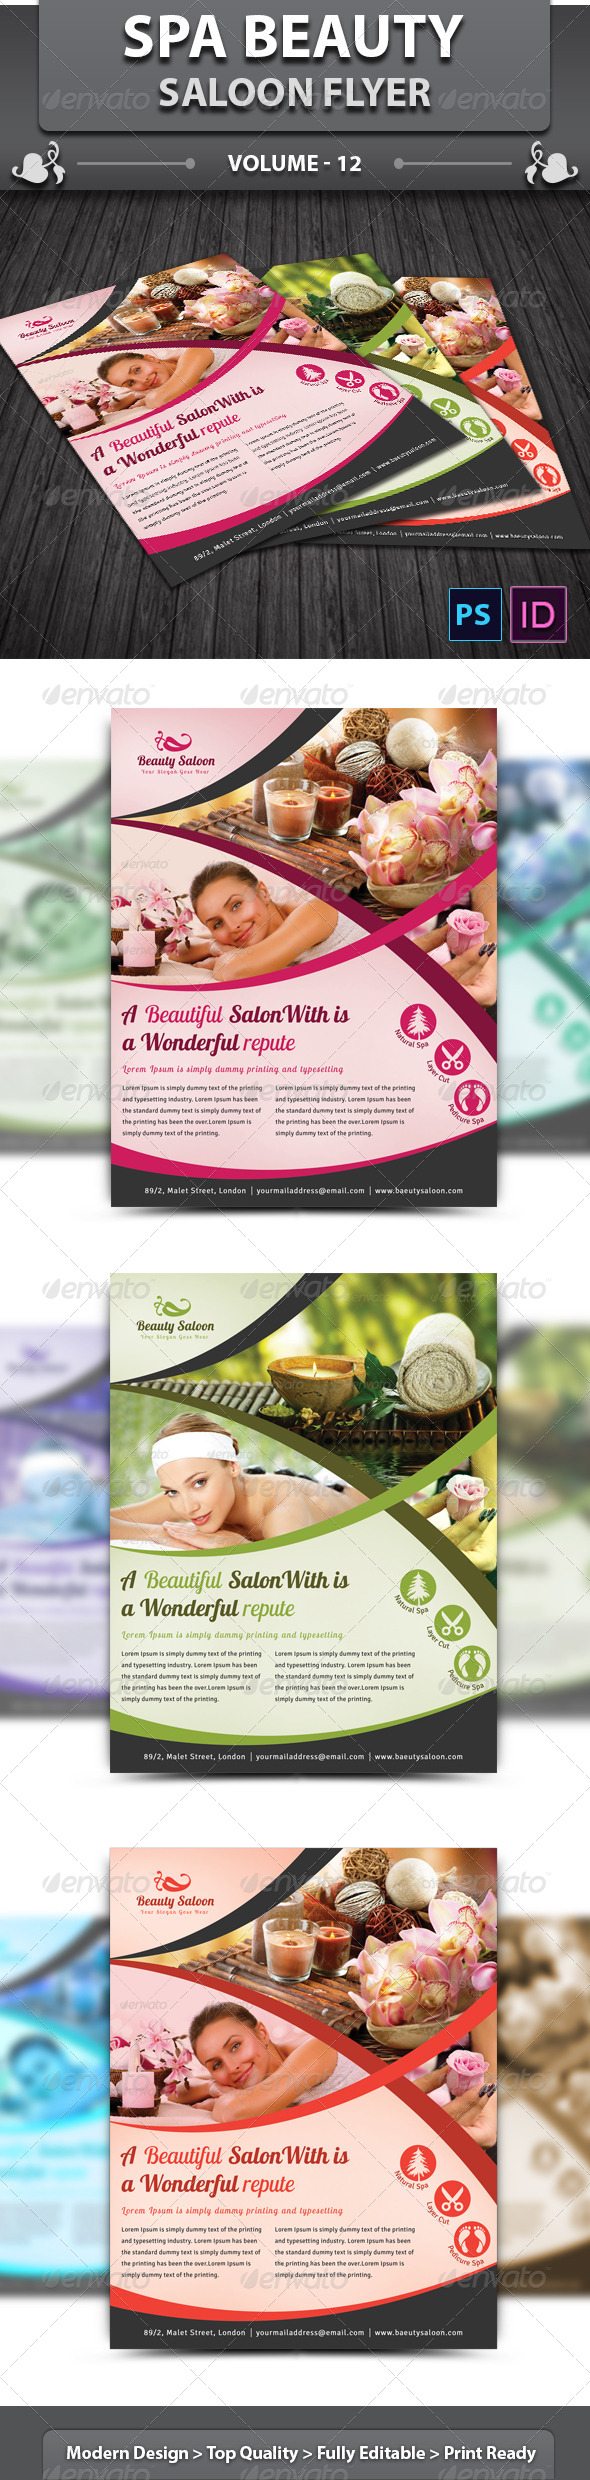 GraphicRiver Spa Beauty Saloon Flyer v12 6485285